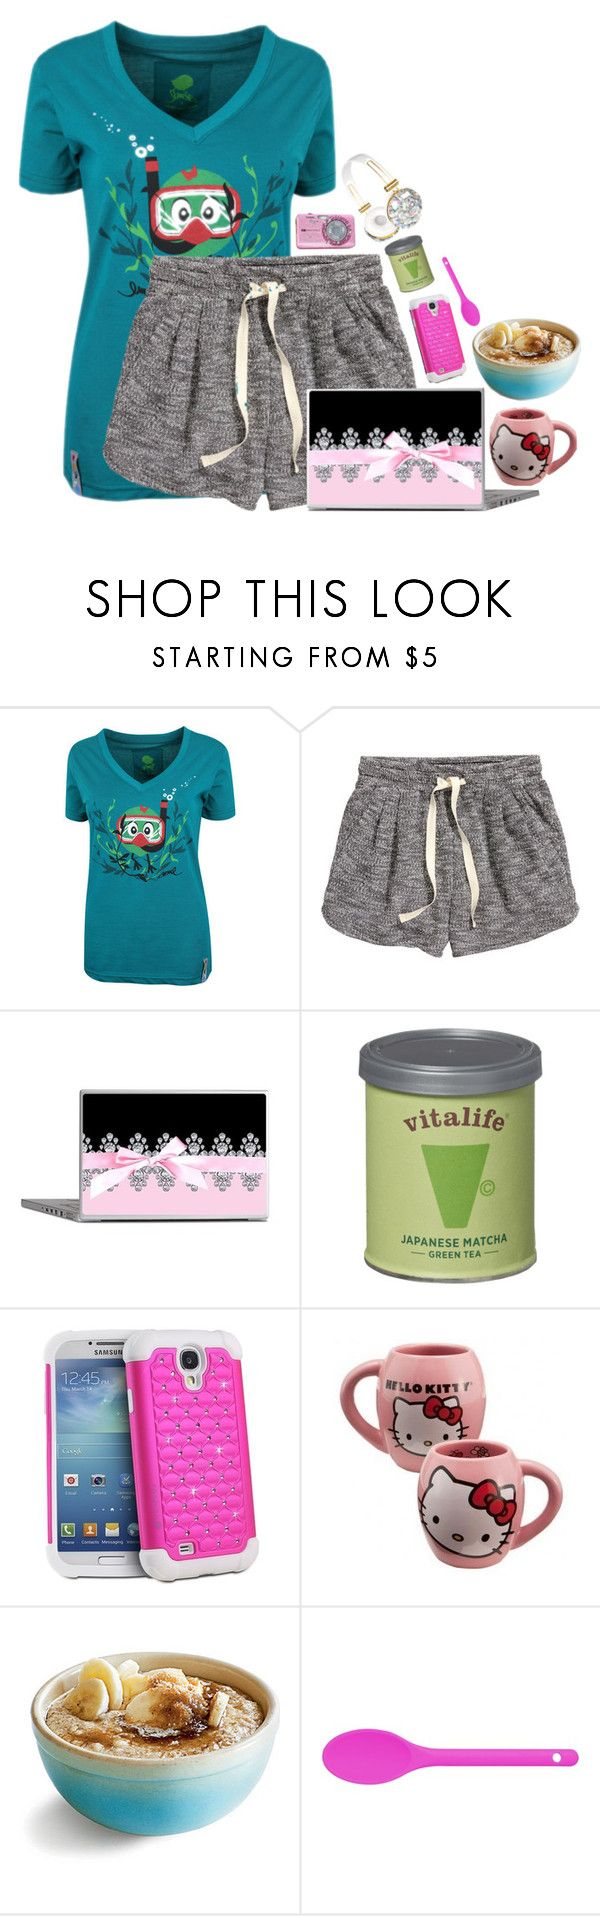 """well"" by emmzizleez888 ❤ liked on Polyvore featuring H&M, Samsung, Hello Kitty, Kitchen Craft Colourworks and vintage"